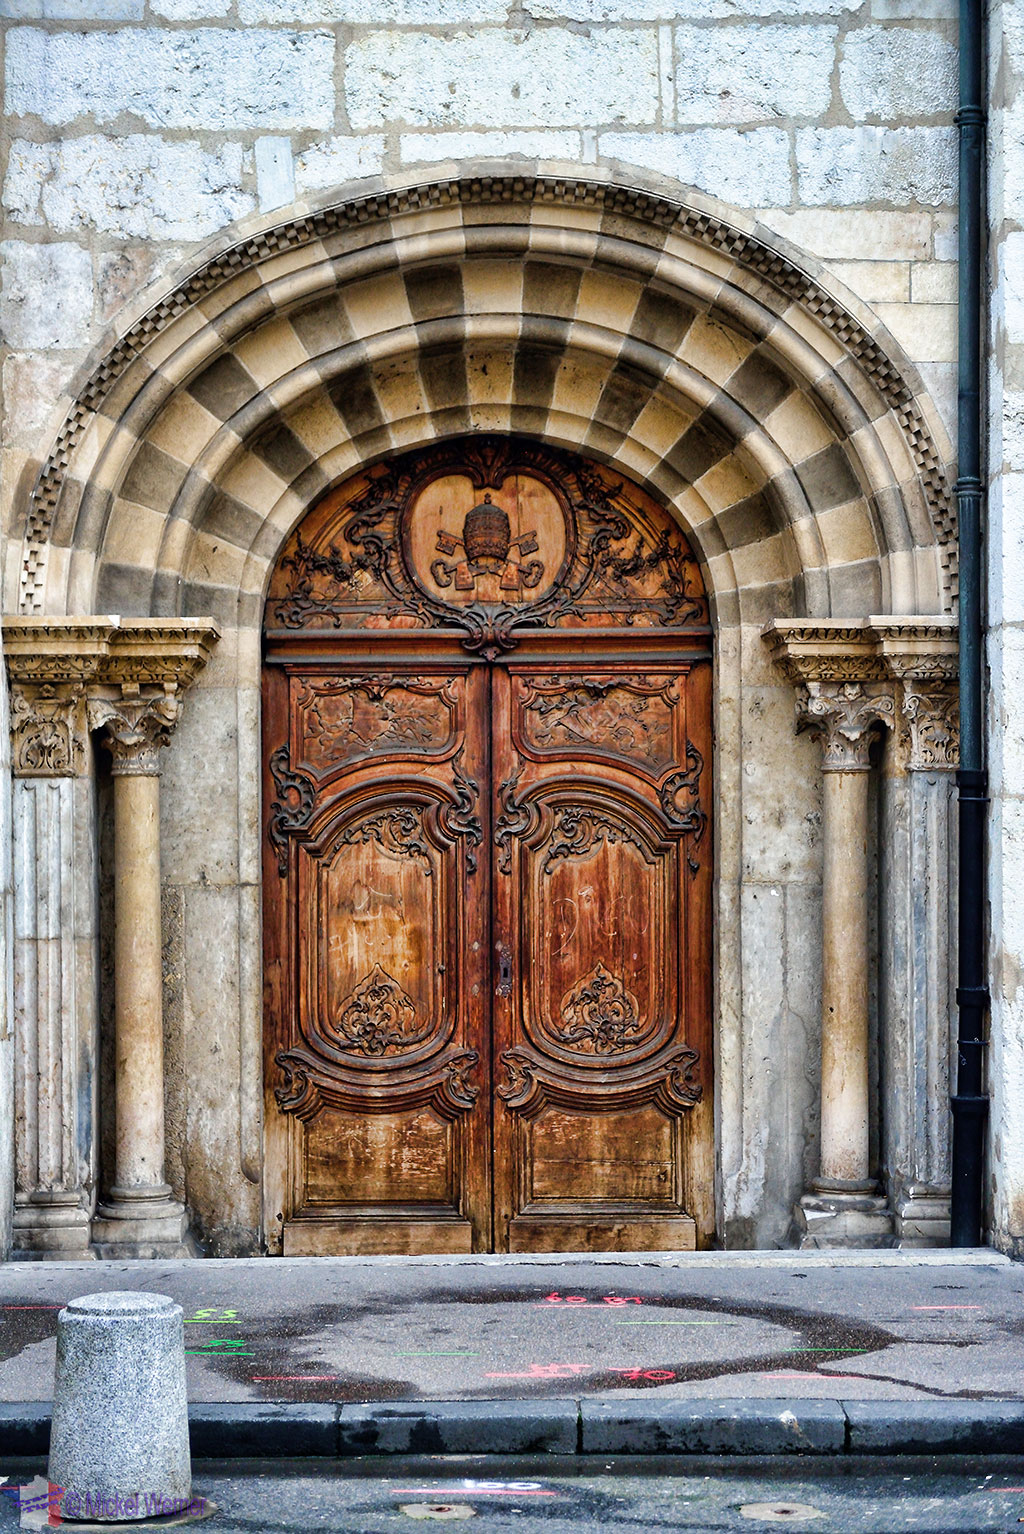 Entrance to the mysterious squeezed building in Lyon